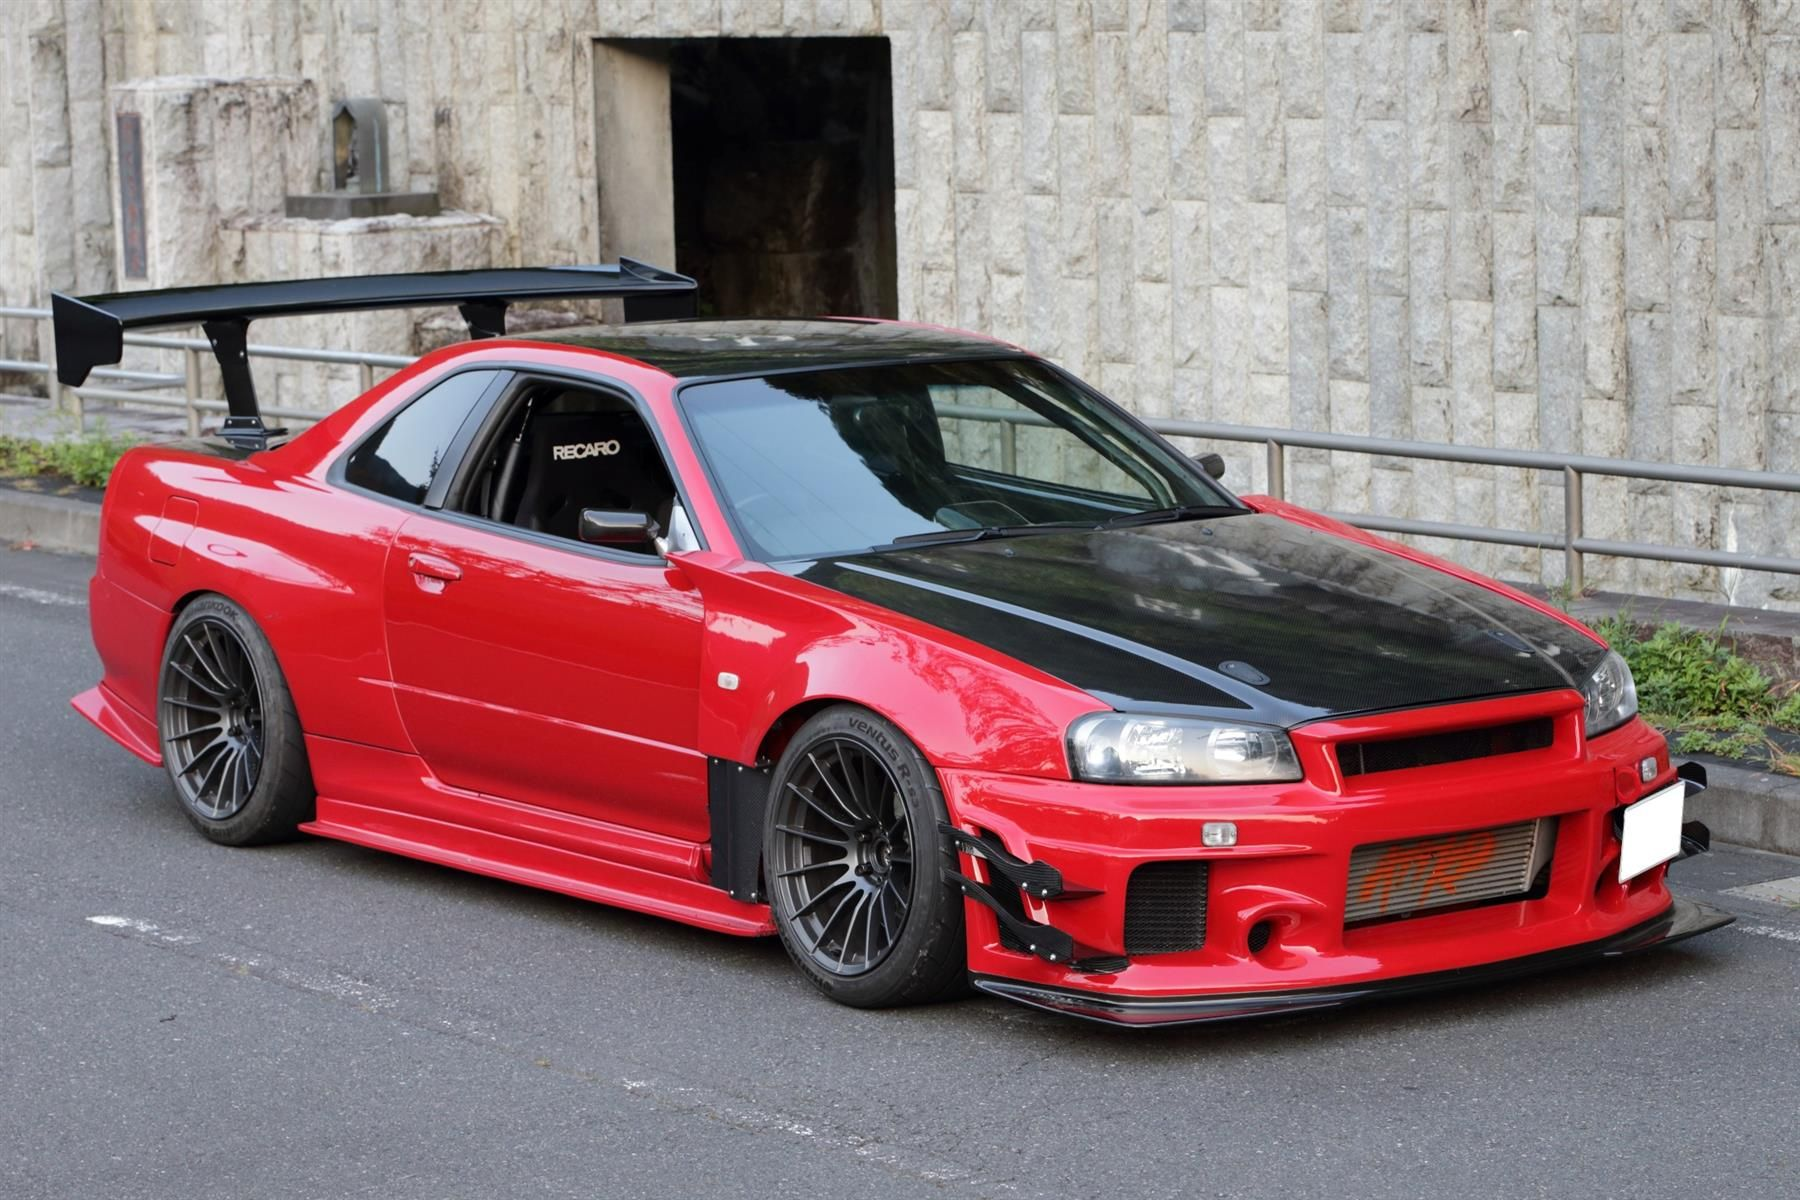 Used 1999 Nissan Skyline R34 for sale in Essex   Pistonheads ... c1ecb3dd240